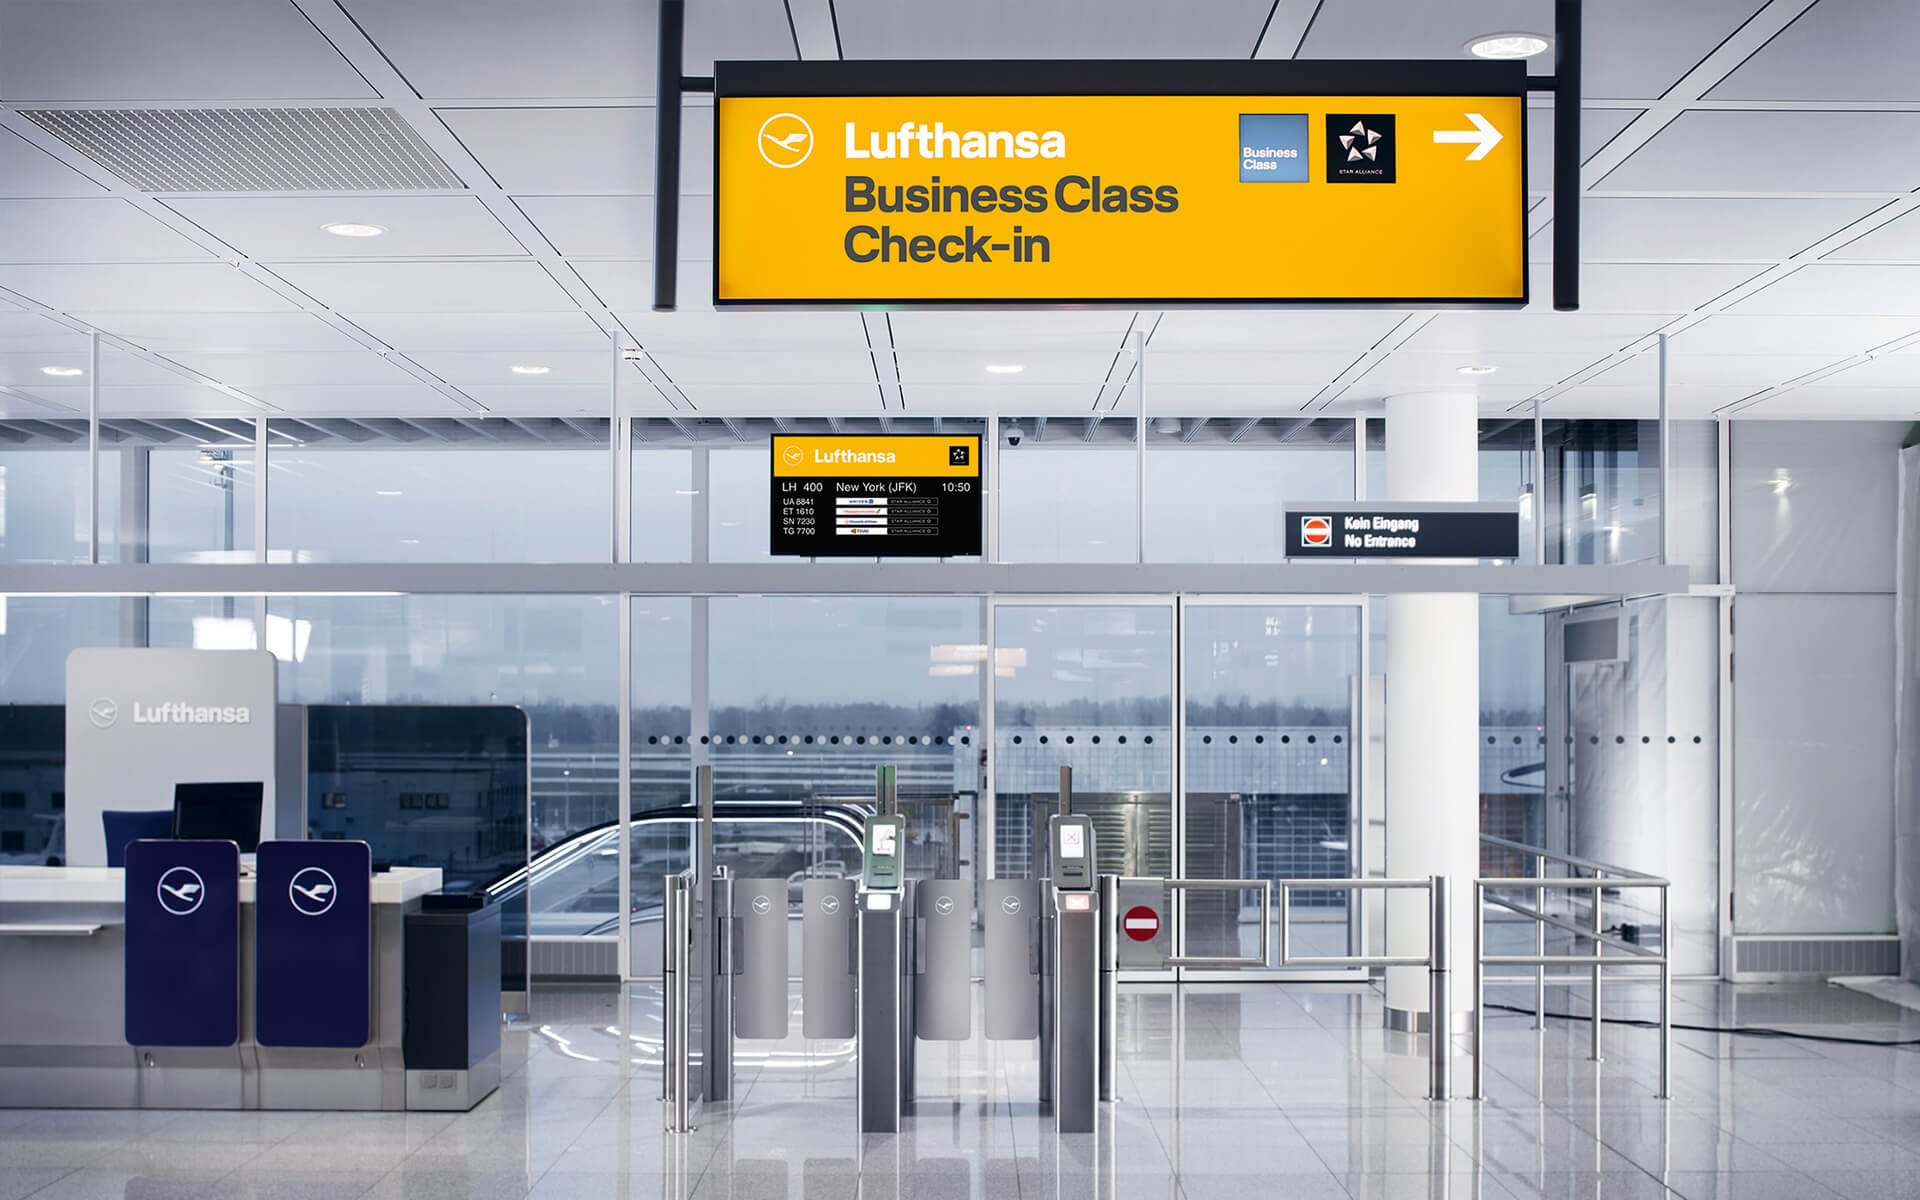 Lufthansa Corporate Design 2018, Redesign, Interior, Signage